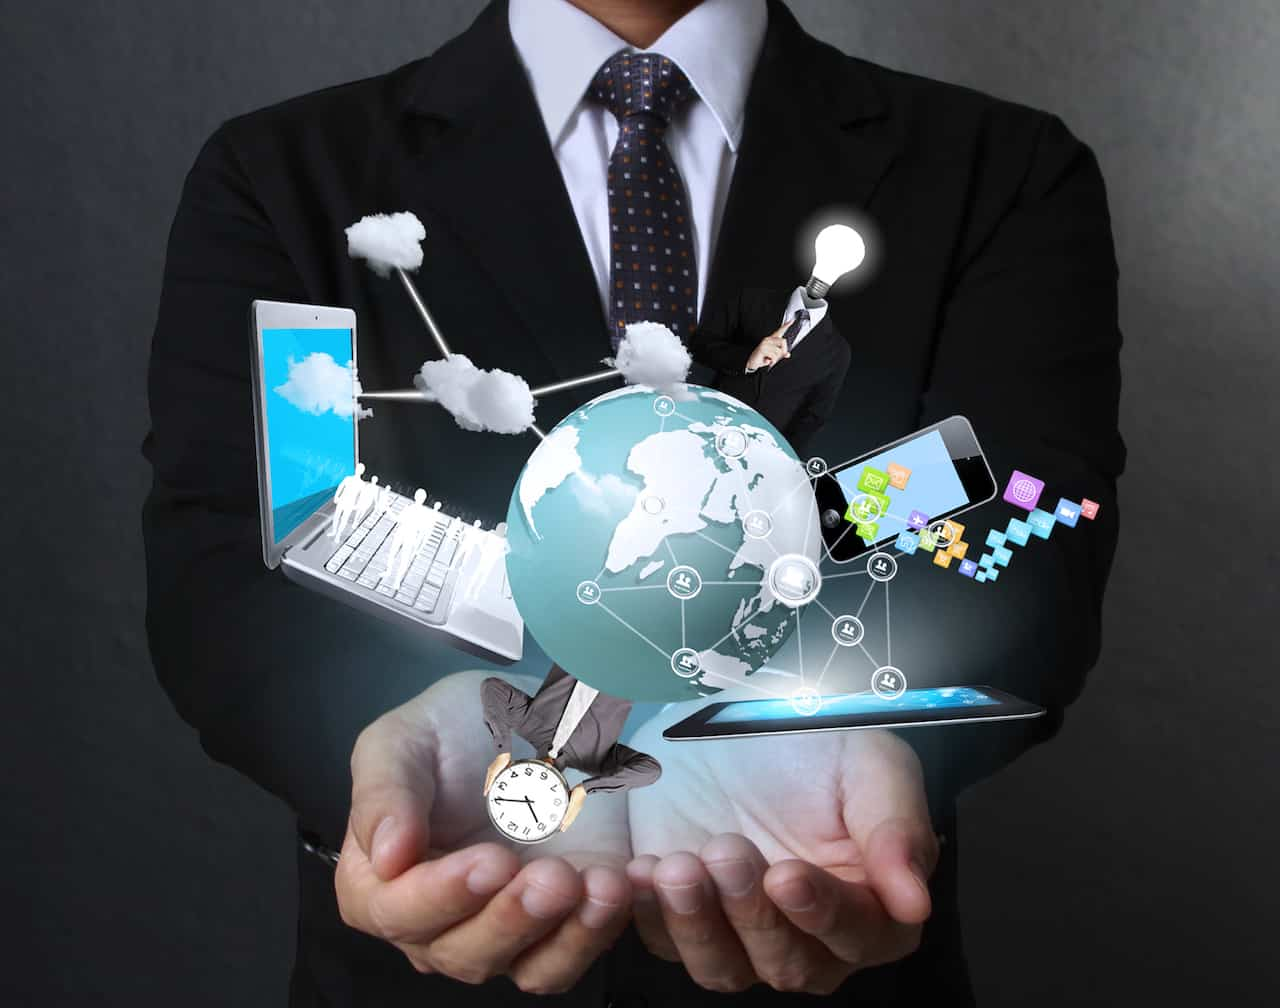 Business man with a globe, laptop, smart phone, tablet and watch projected and cradled in his hands